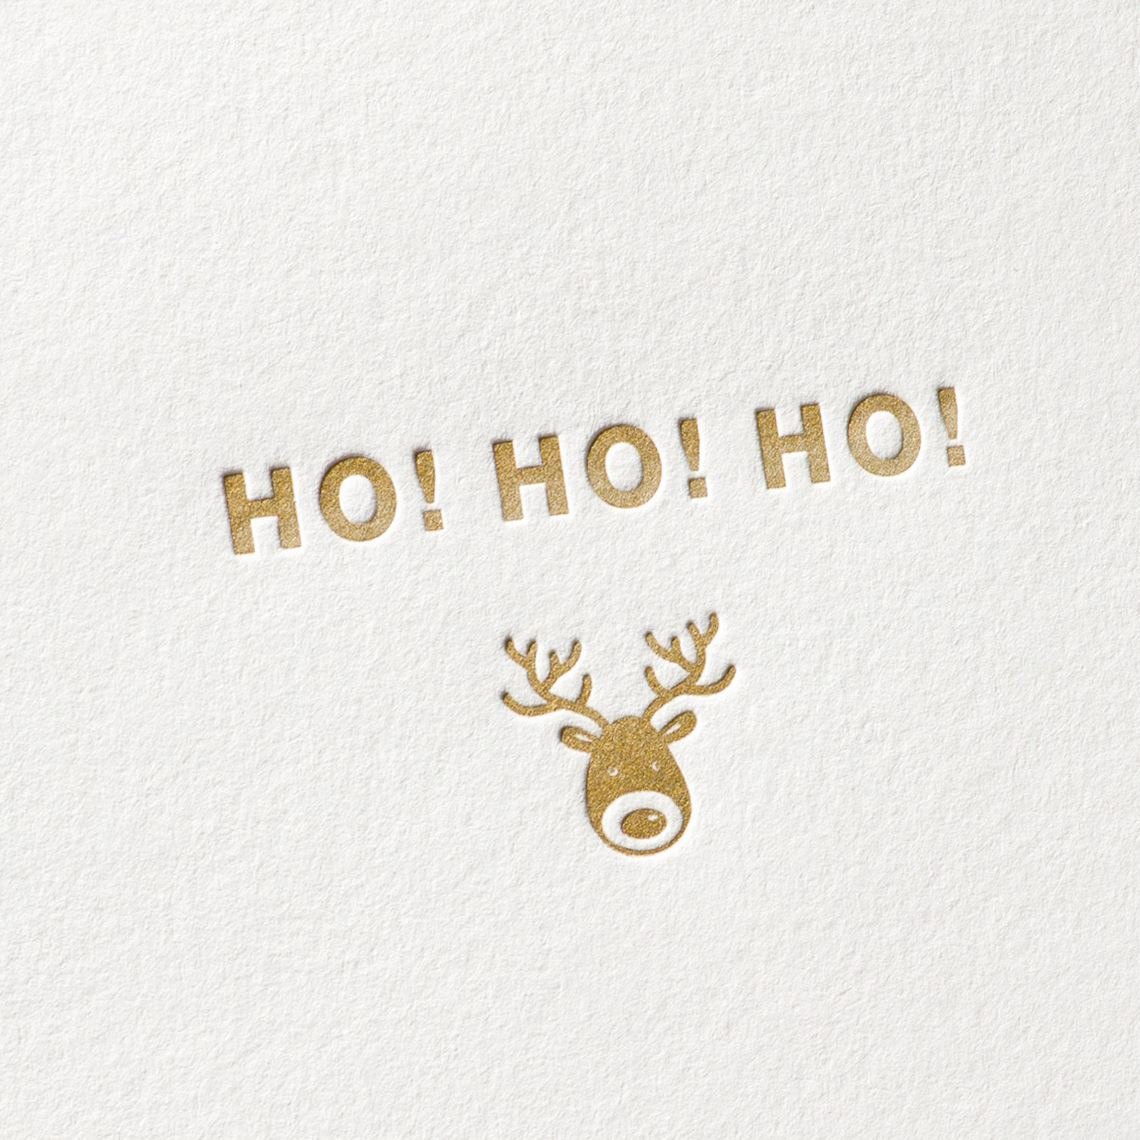 ho ho ho weihnachten letterpress karten paul dieter. Black Bedroom Furniture Sets. Home Design Ideas